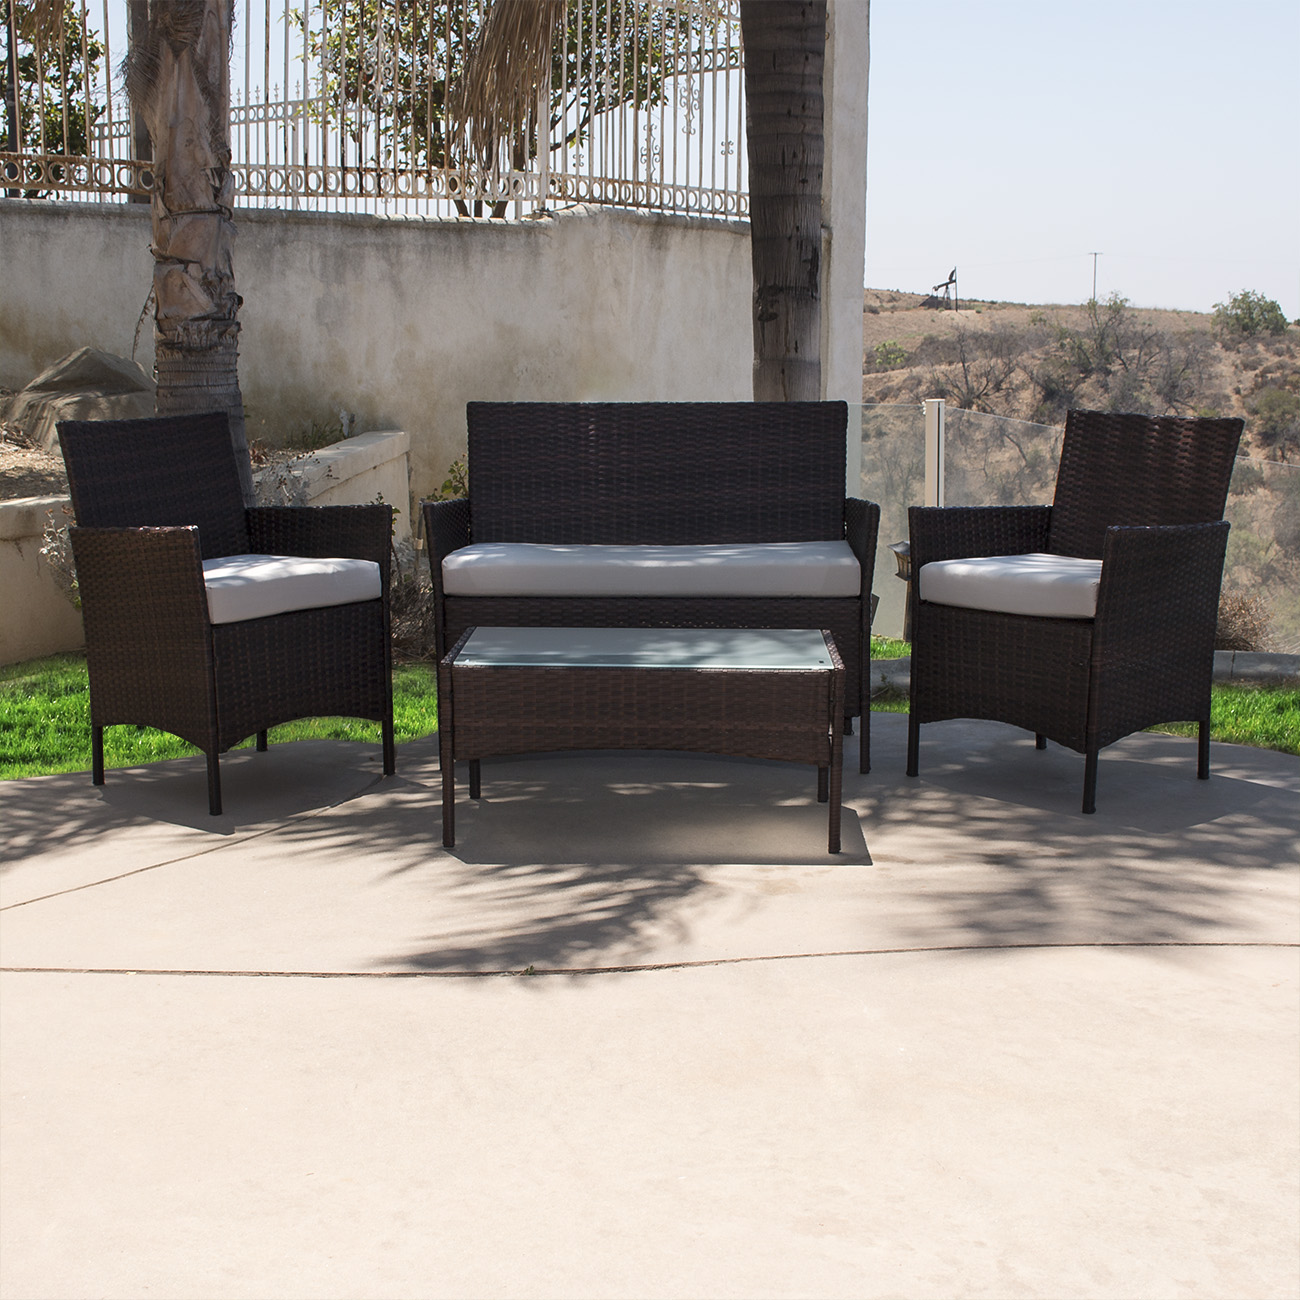 4PCS Outdoor Rattan Wicker Patio Garden Sofa Couch ...